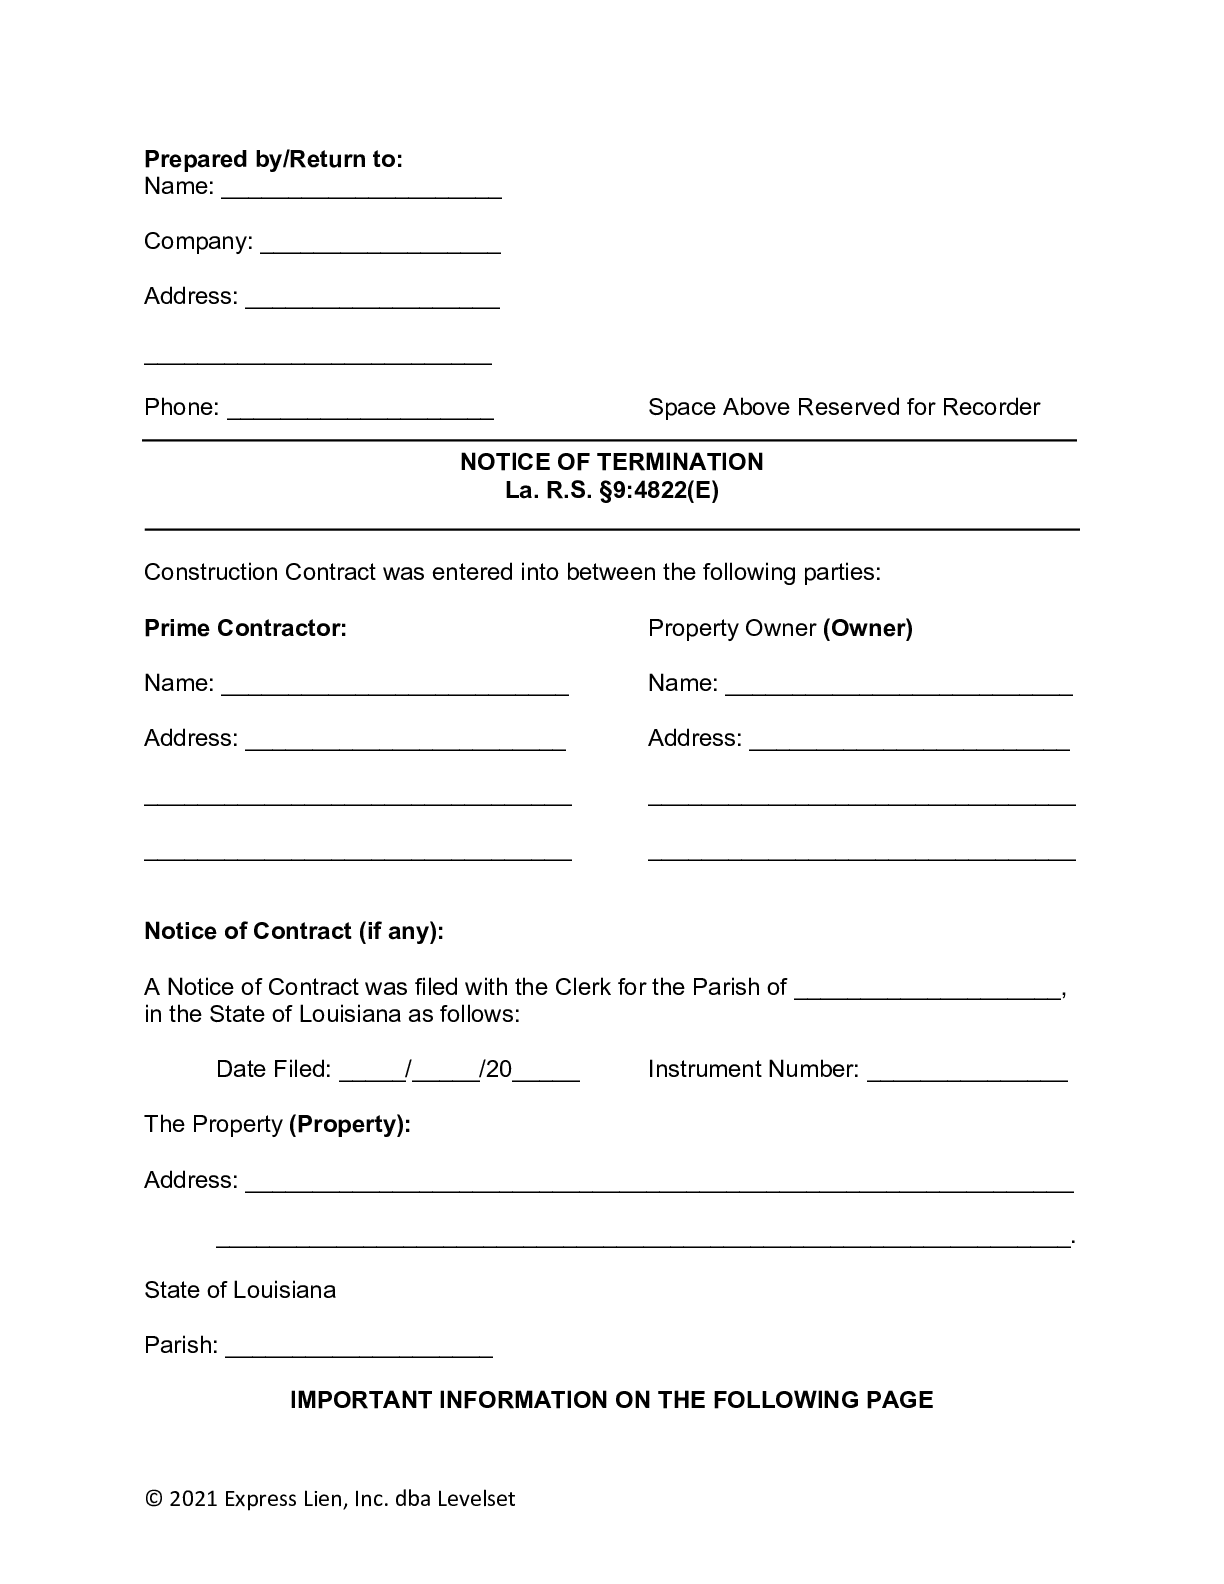 Louisiana Notice of Termination Form